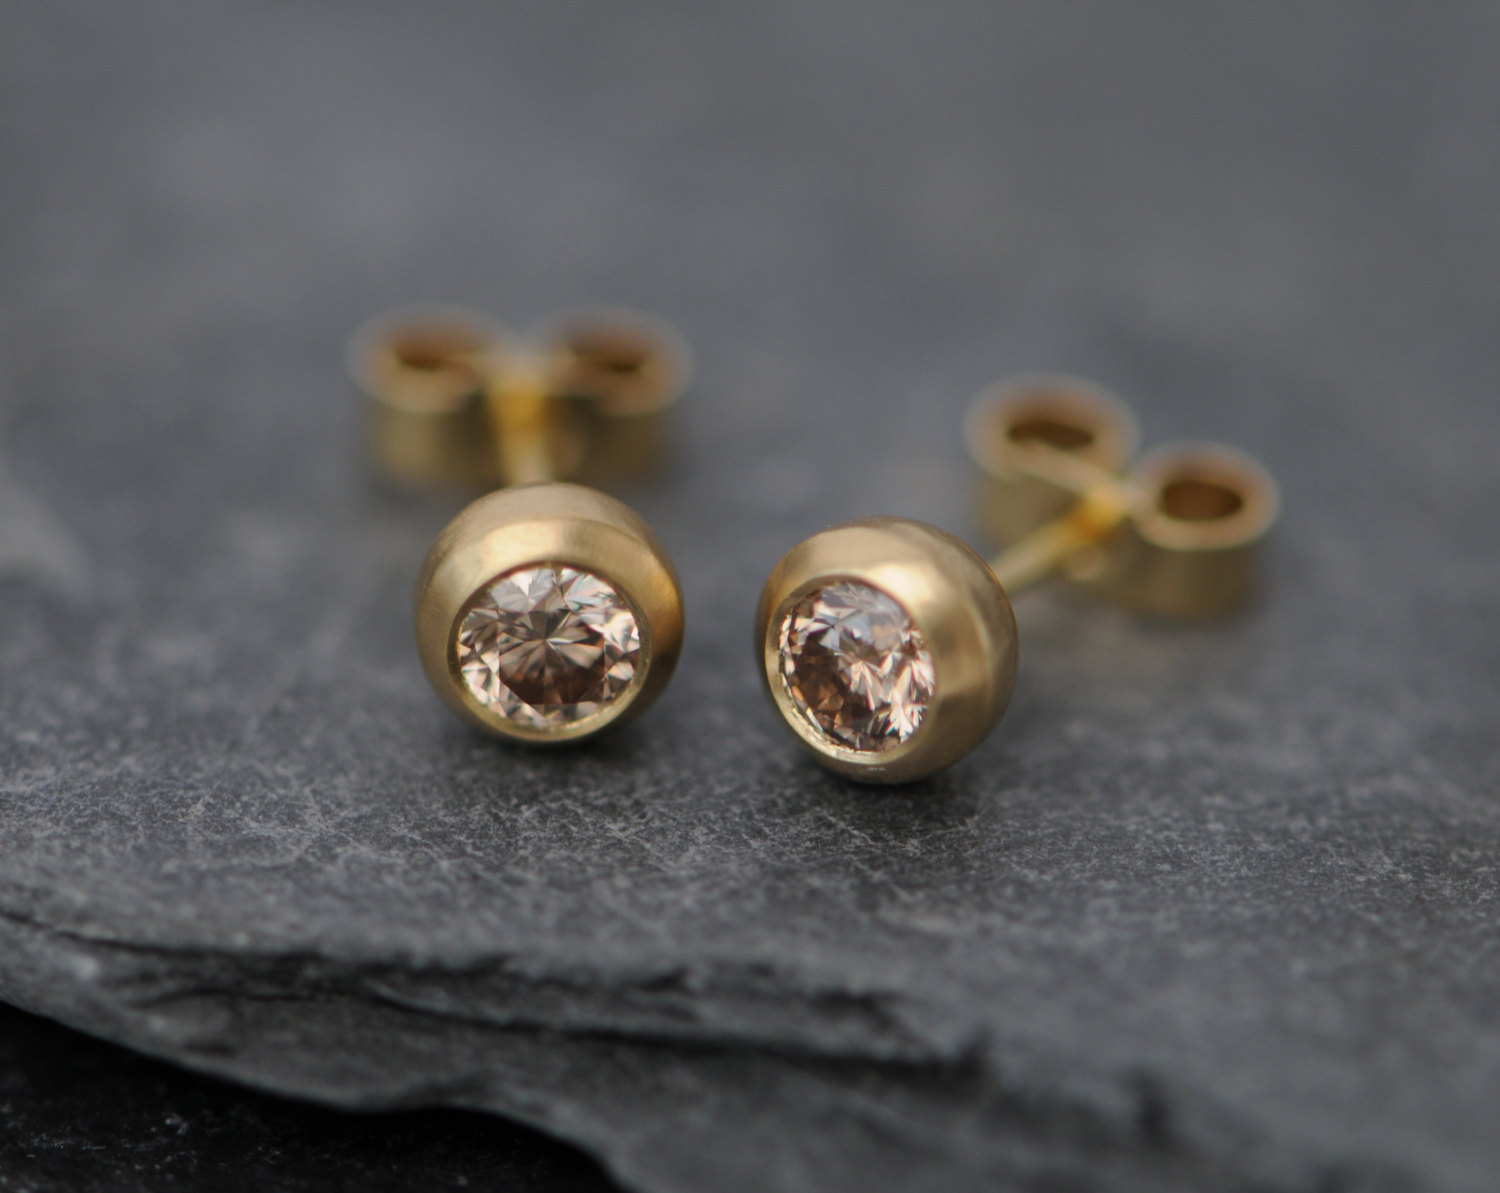 gold dsc fiori single champagne jewellery products yellow studs stone diamond newman stud james